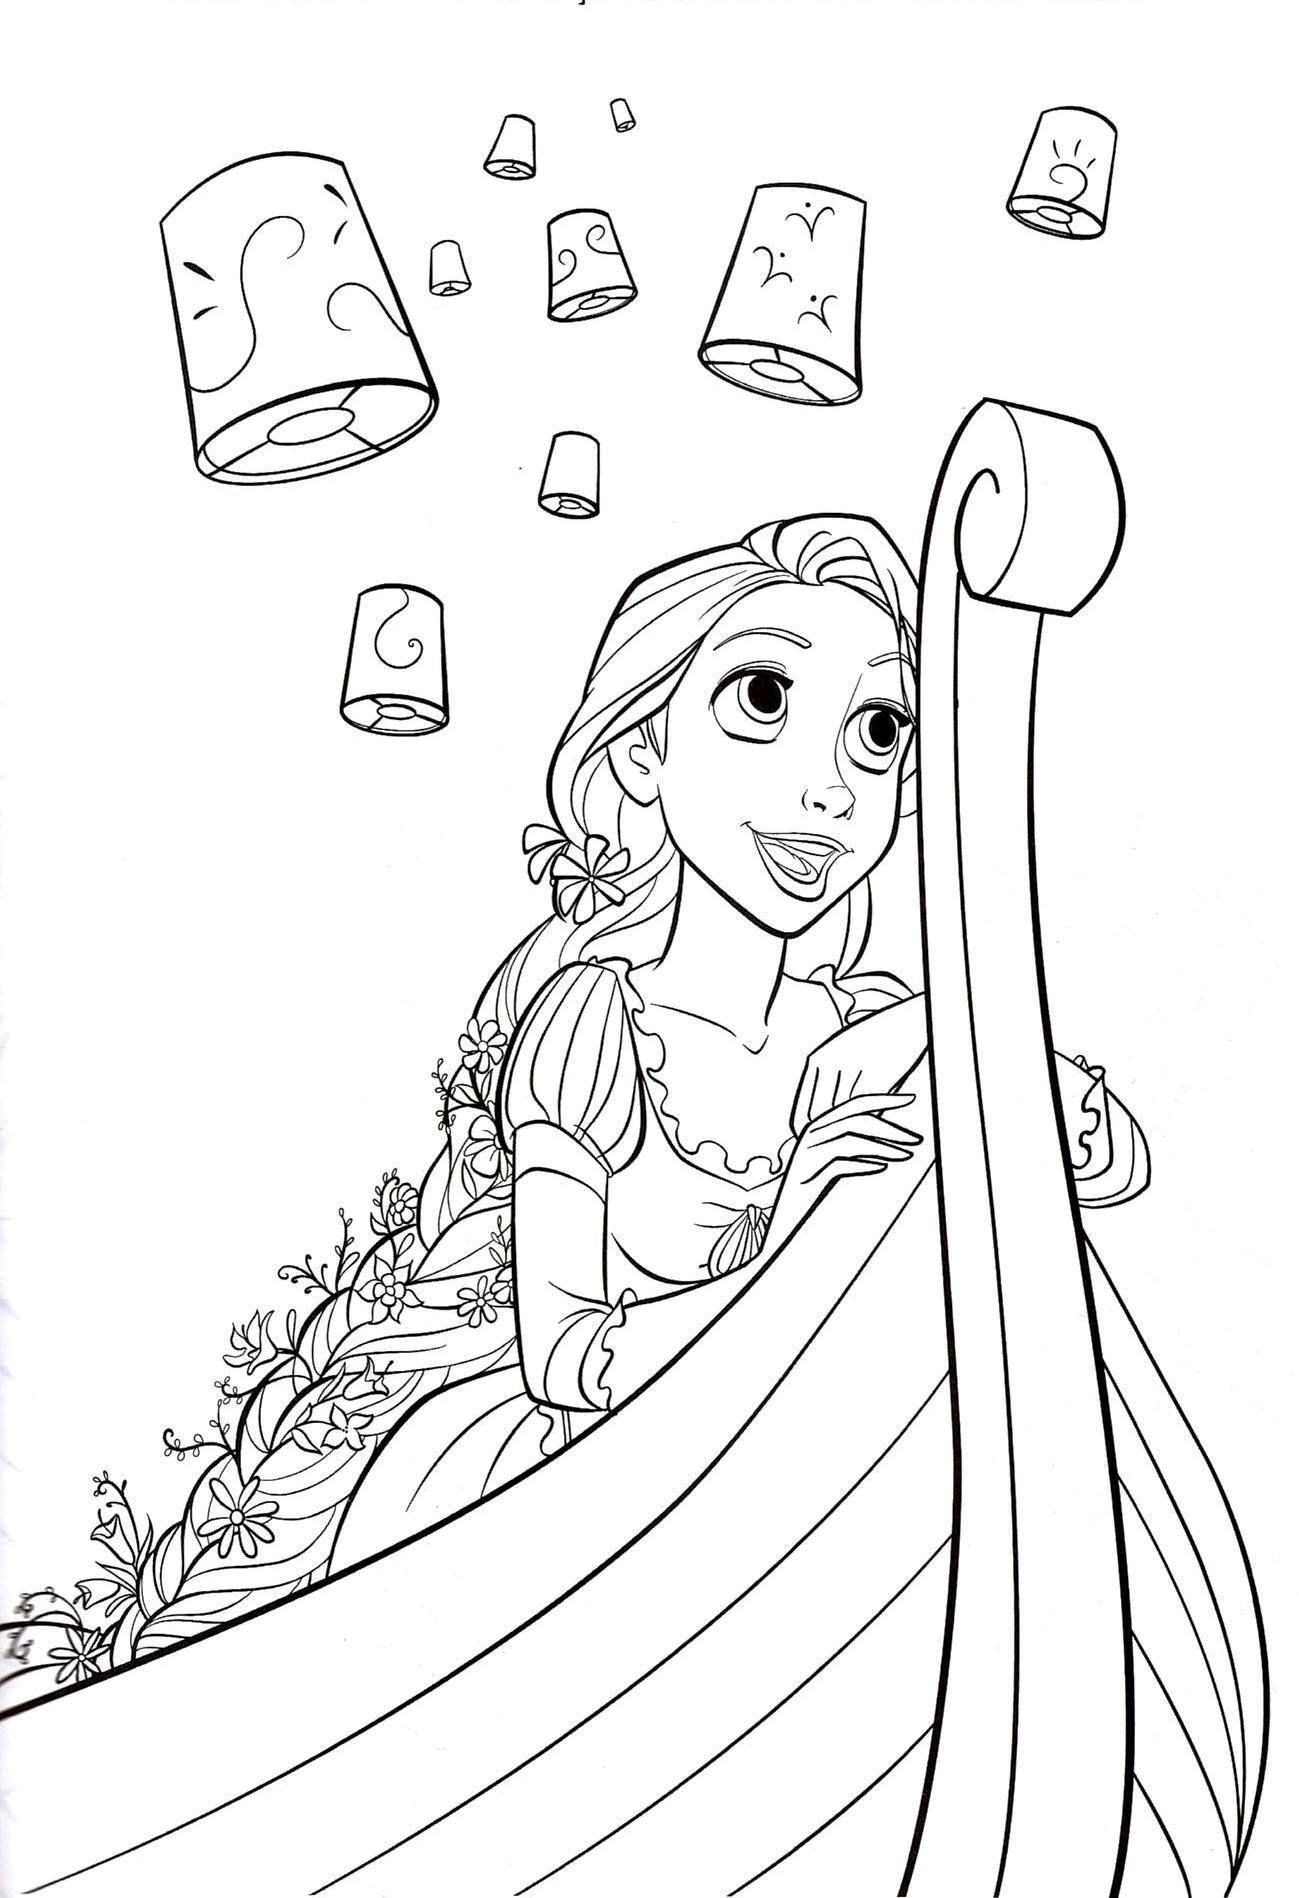 Rapunzel Ausmalbilder Ausdrucken : Disney Rapunzel Coloring Pages Free Printable Disney Princess